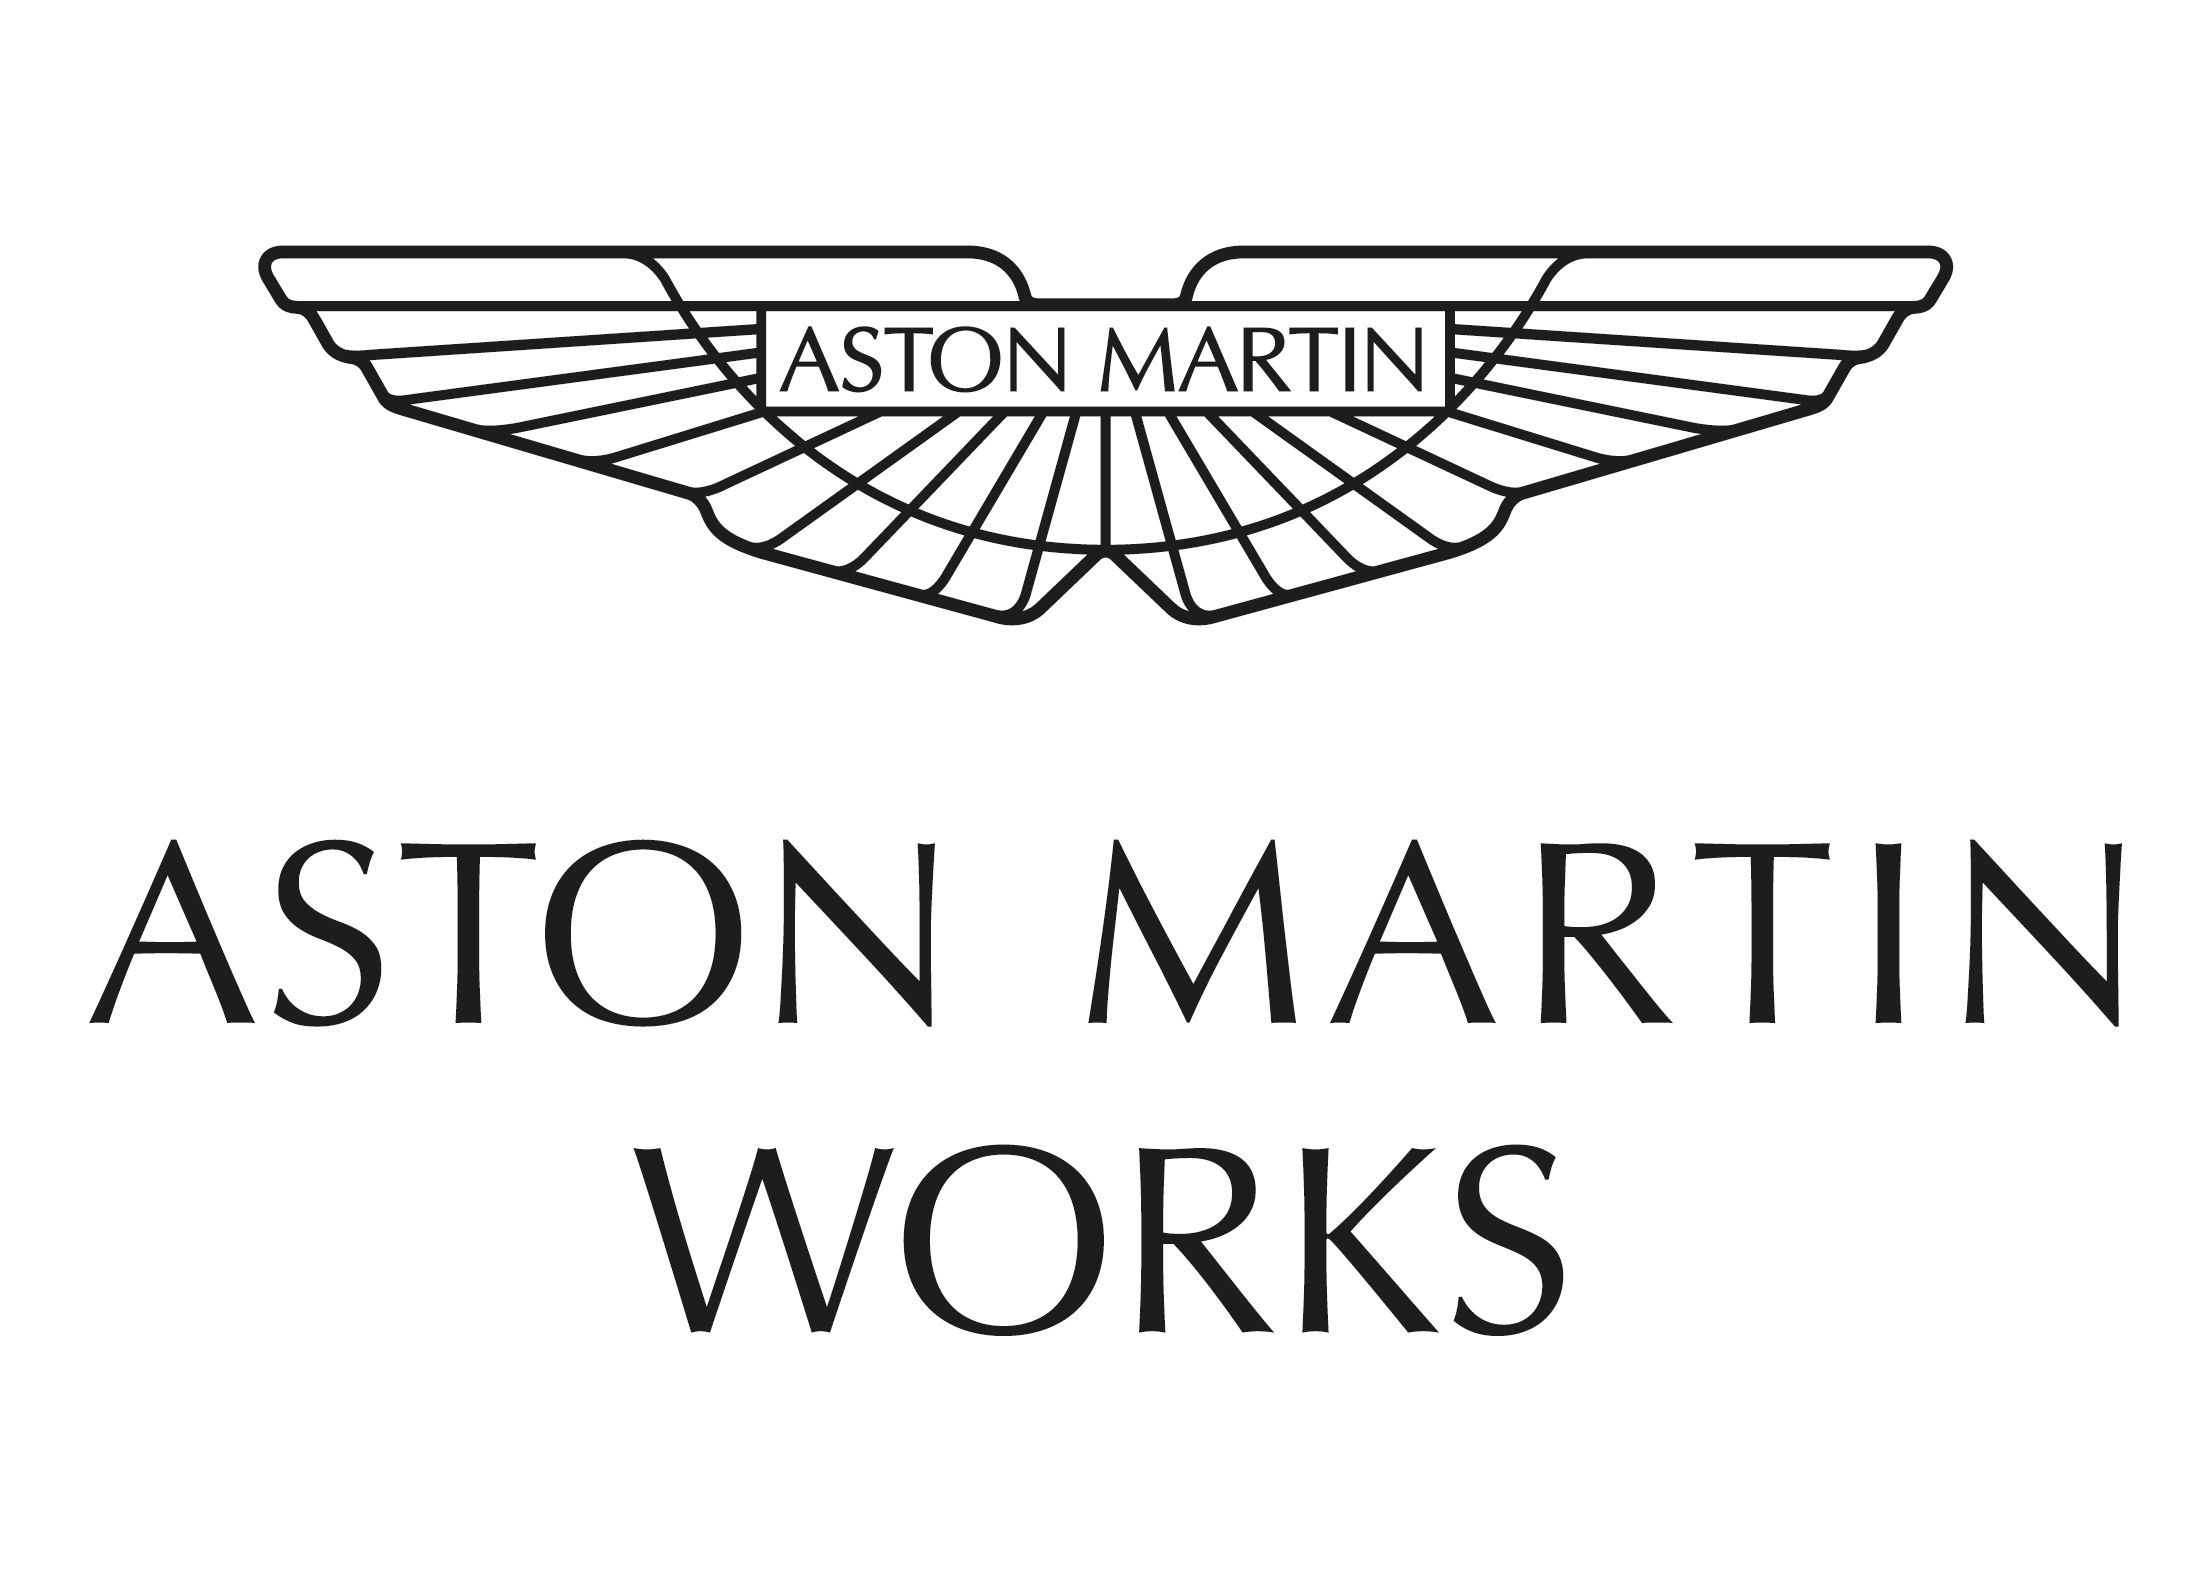 Used Aston Martin DB9 Volante cars for sale with PistonHeads